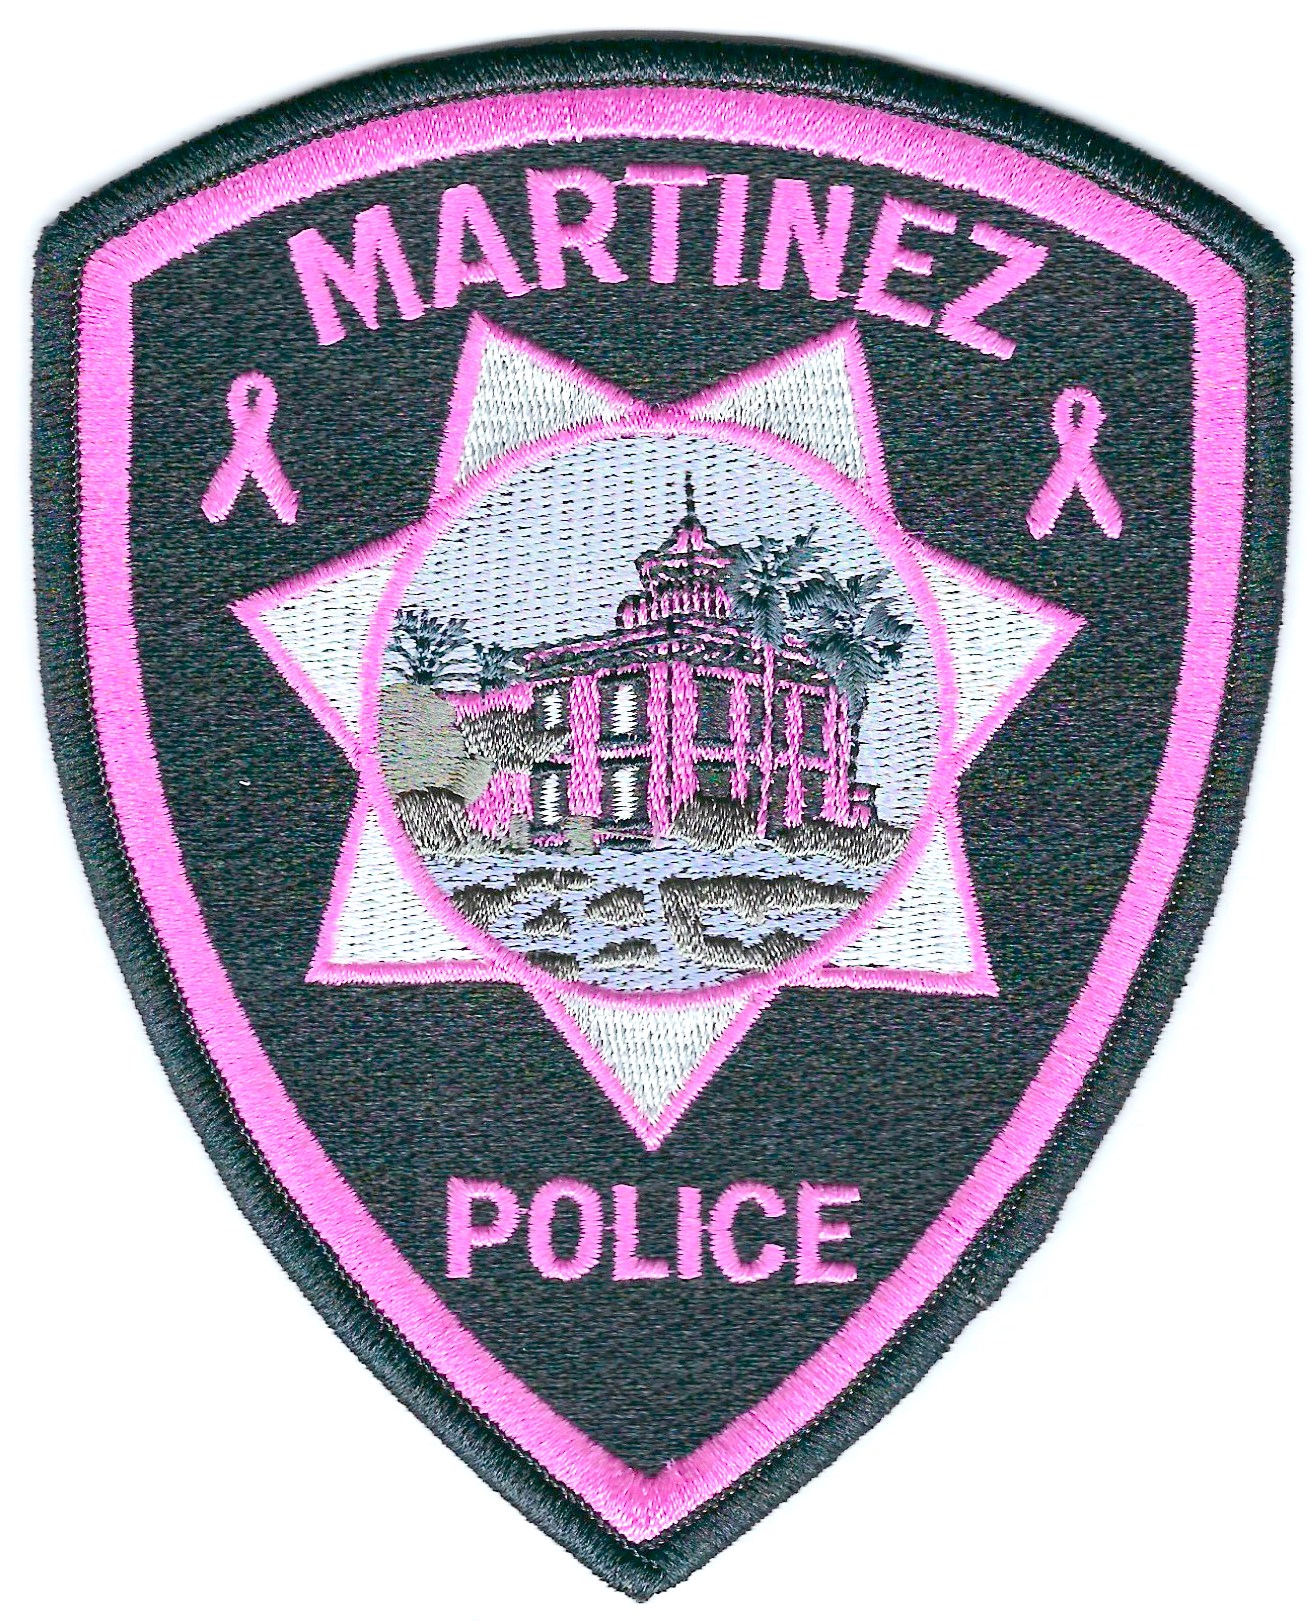 Martinez Police pink sample (updated) 6-5-18.jpg